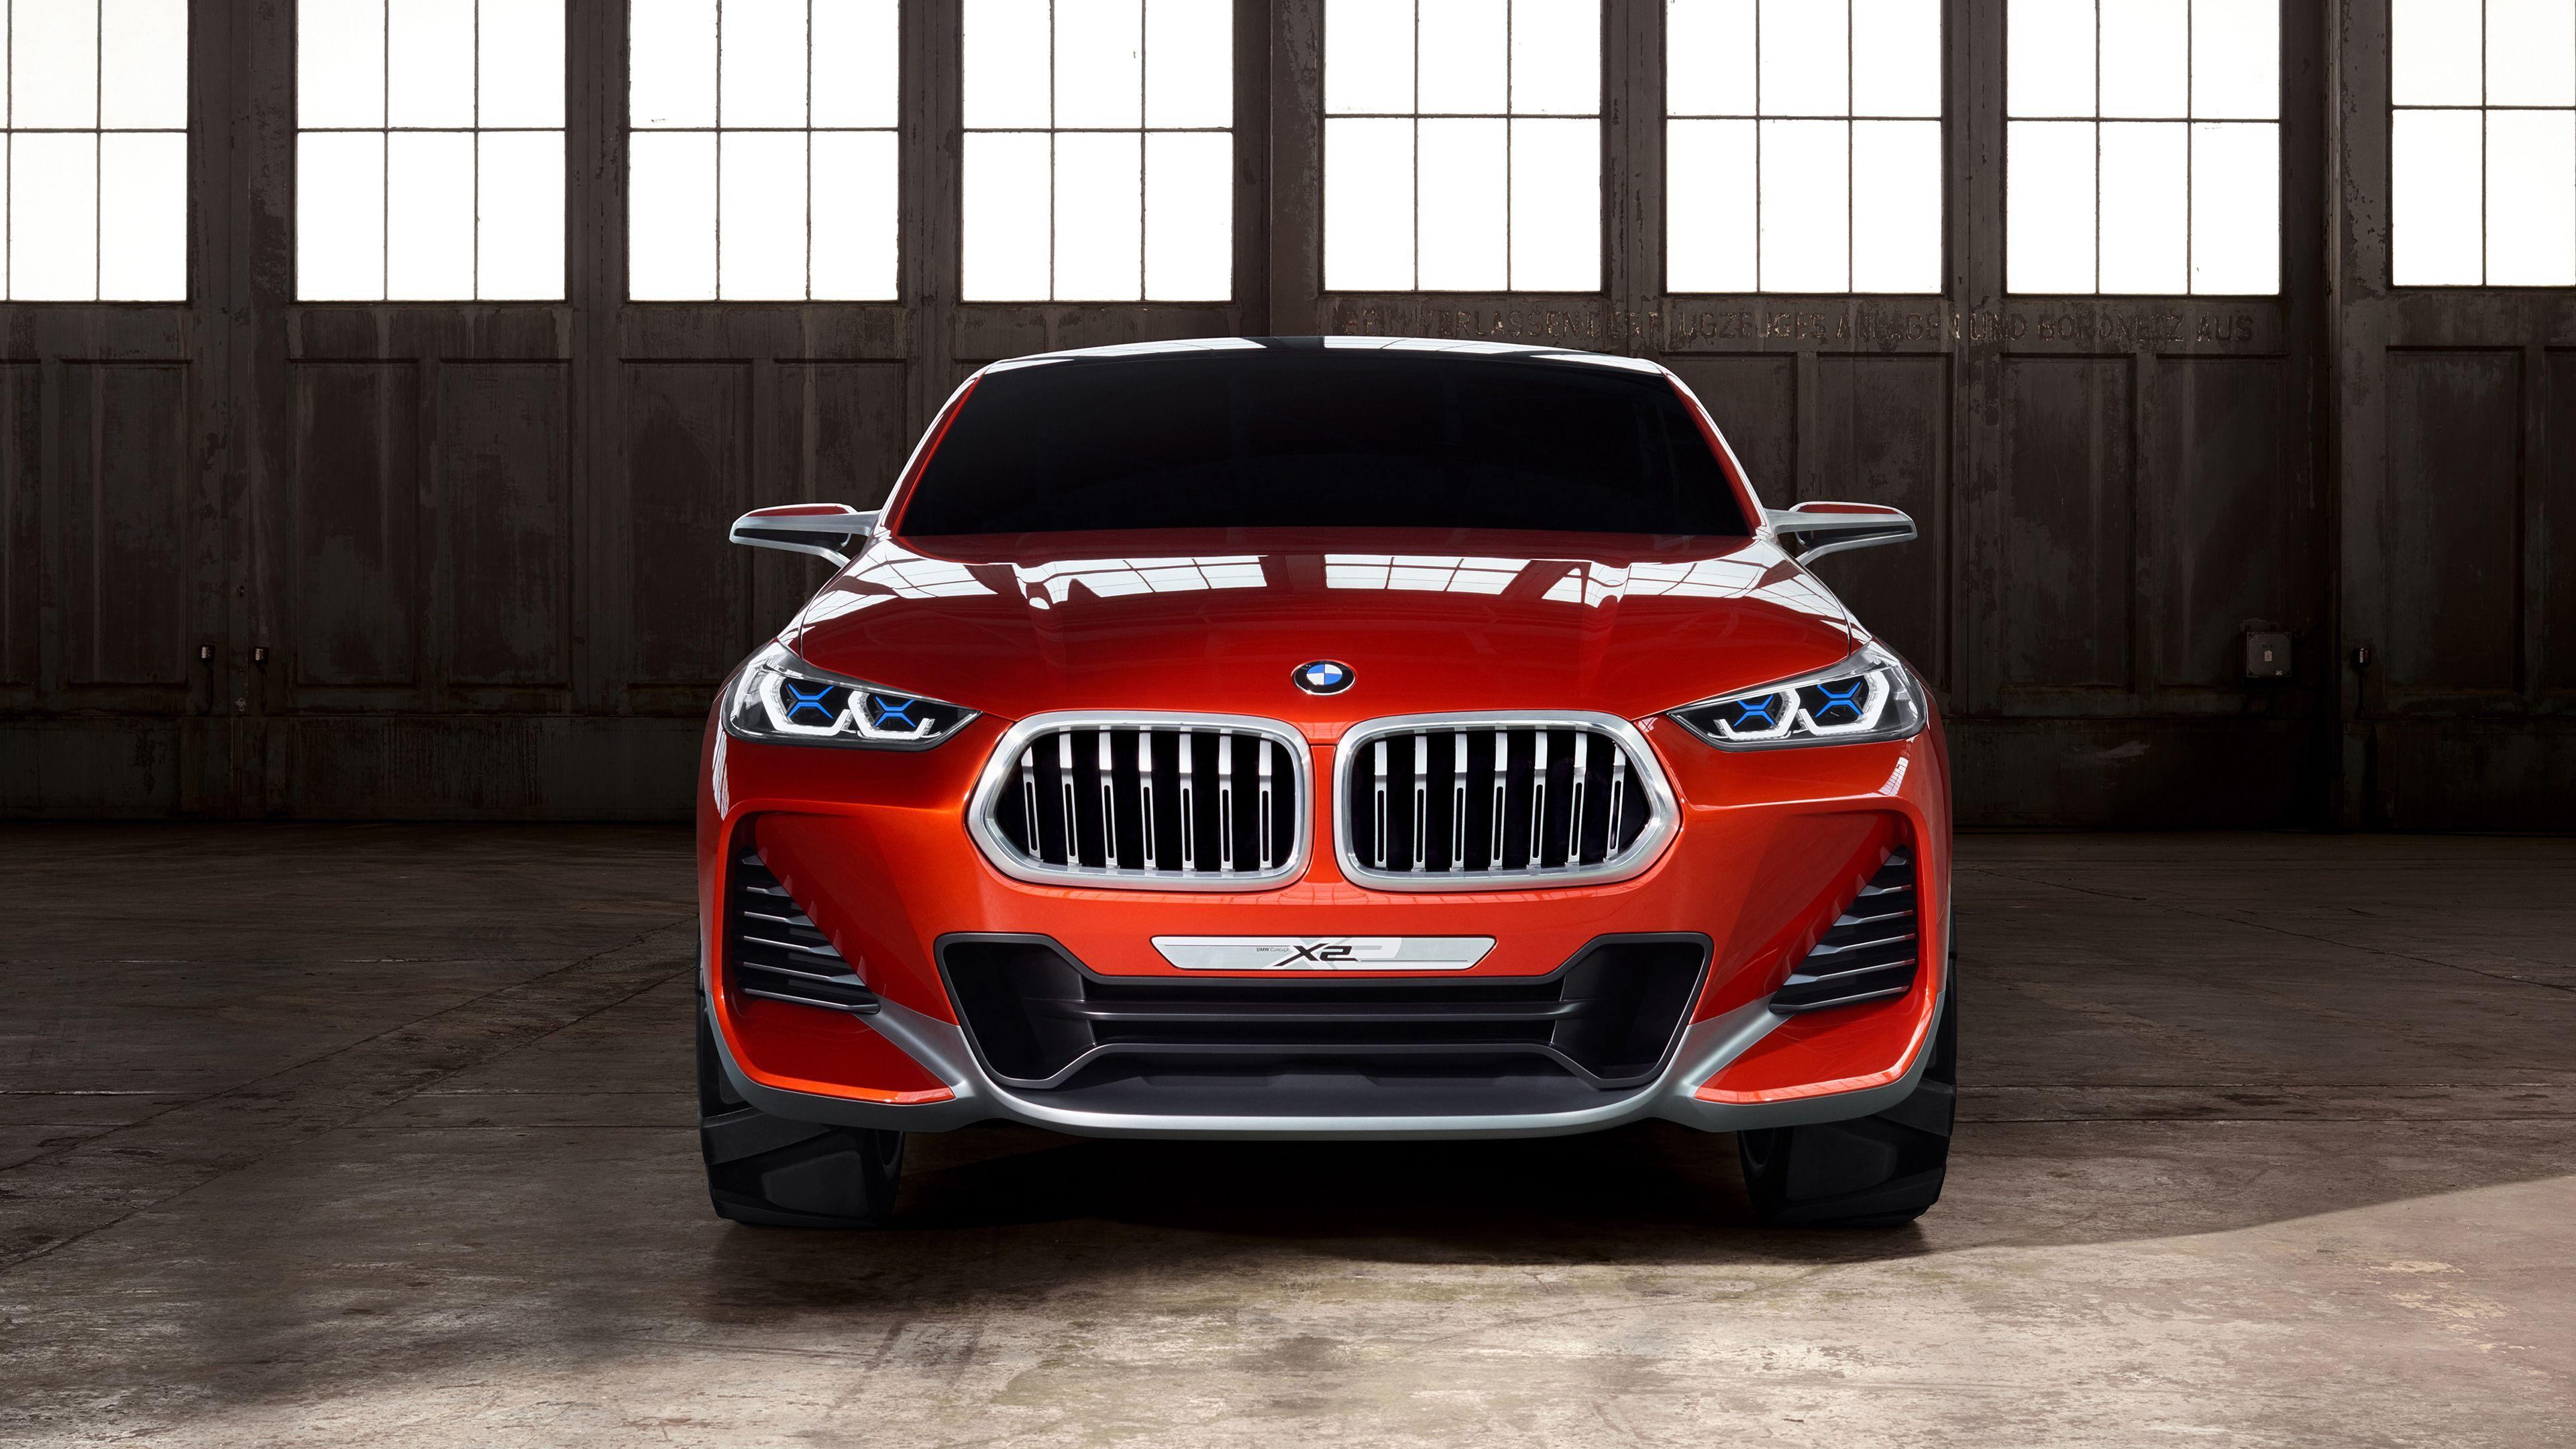 2017 BMW X2 SUV 4K Wallpapers